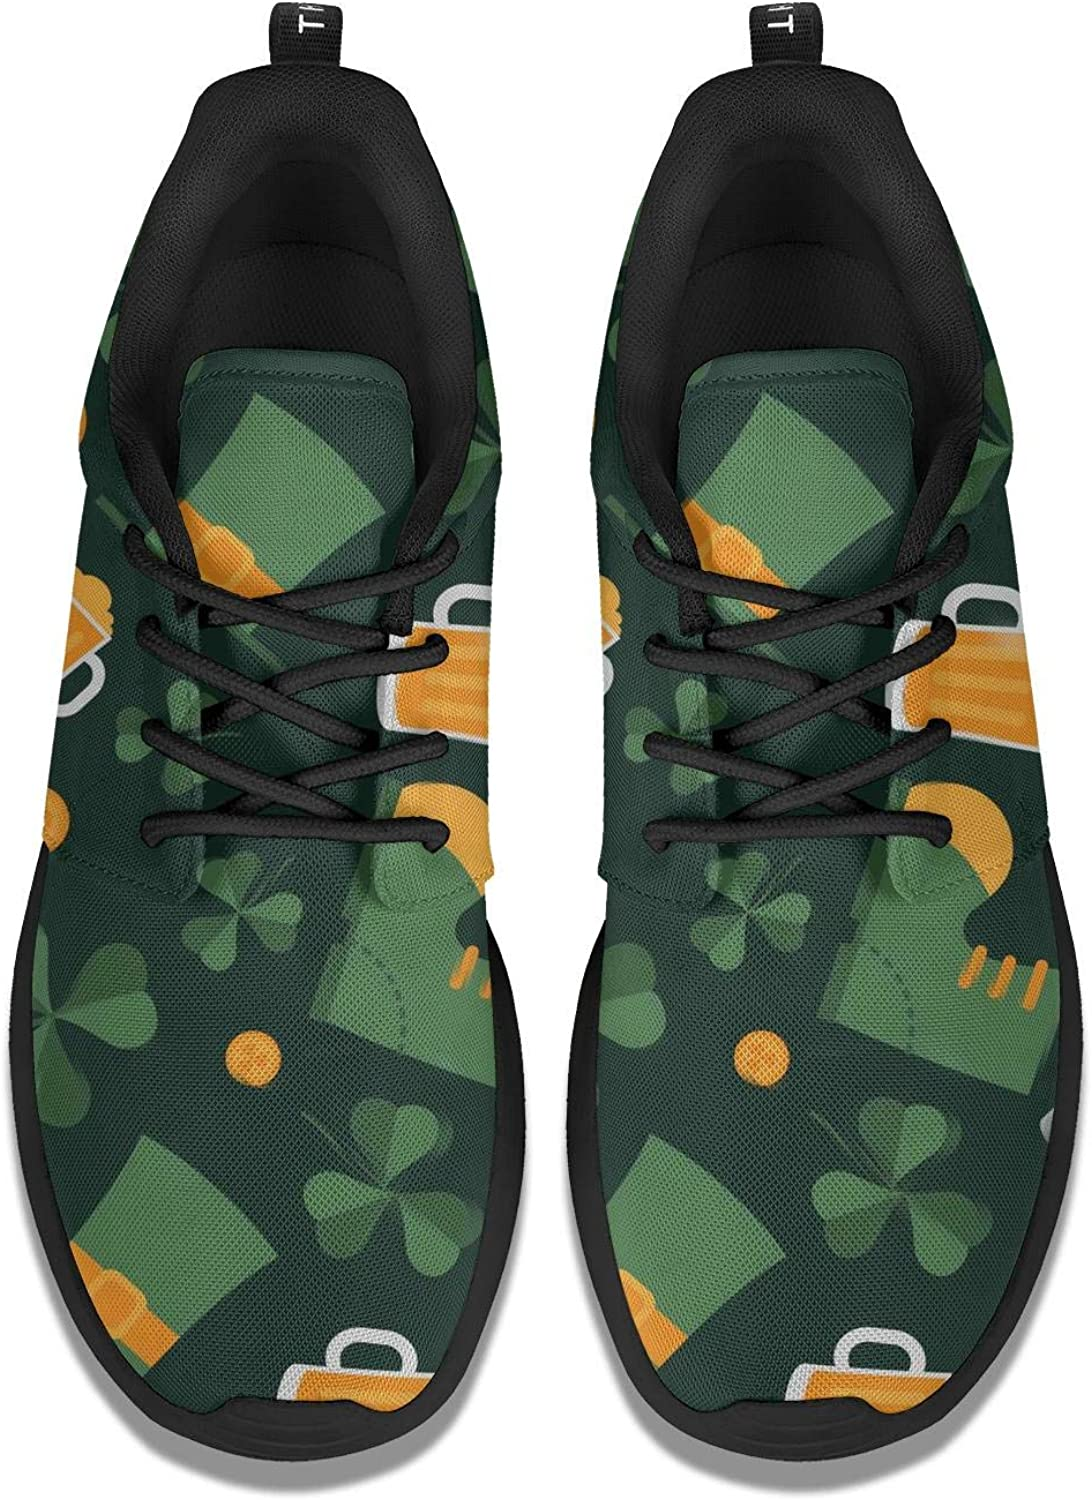 St Patricks Day Irish Flag Women Running Shoes Rubber Sole Tennis Shoes Casual Shoes